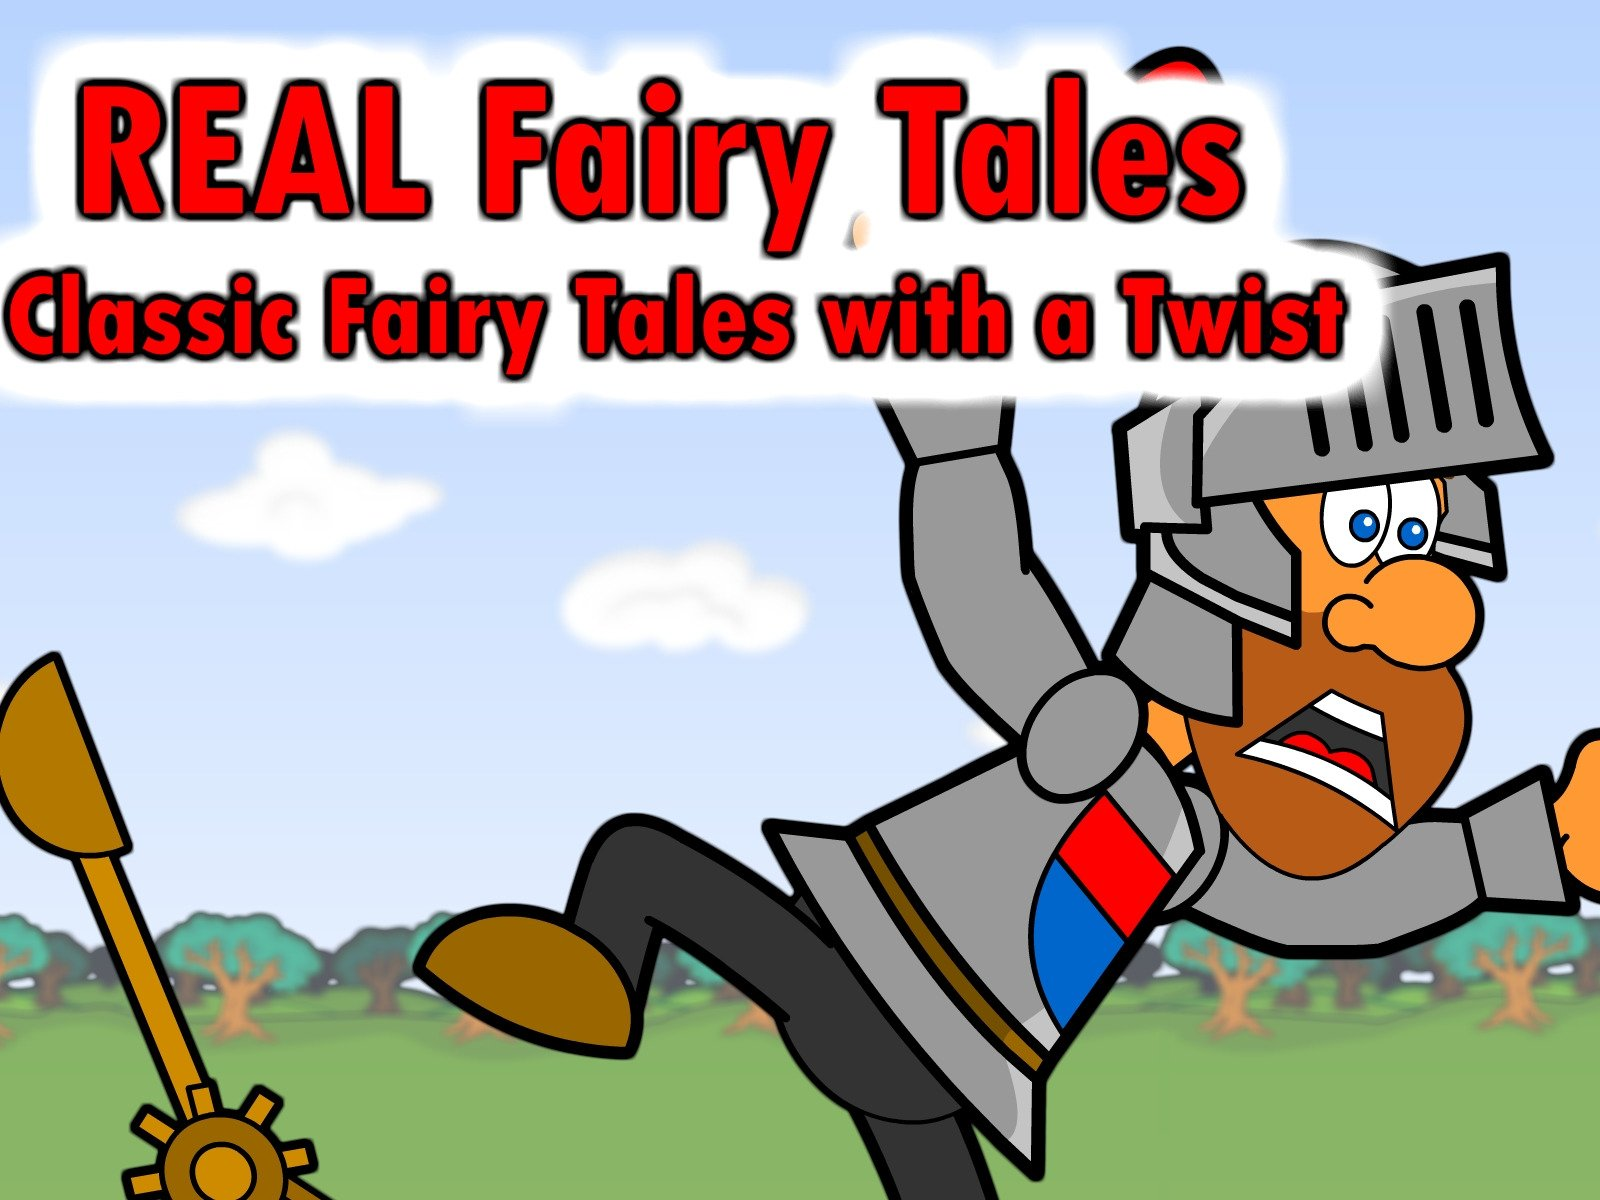 Real Fairy Tales - Season 1